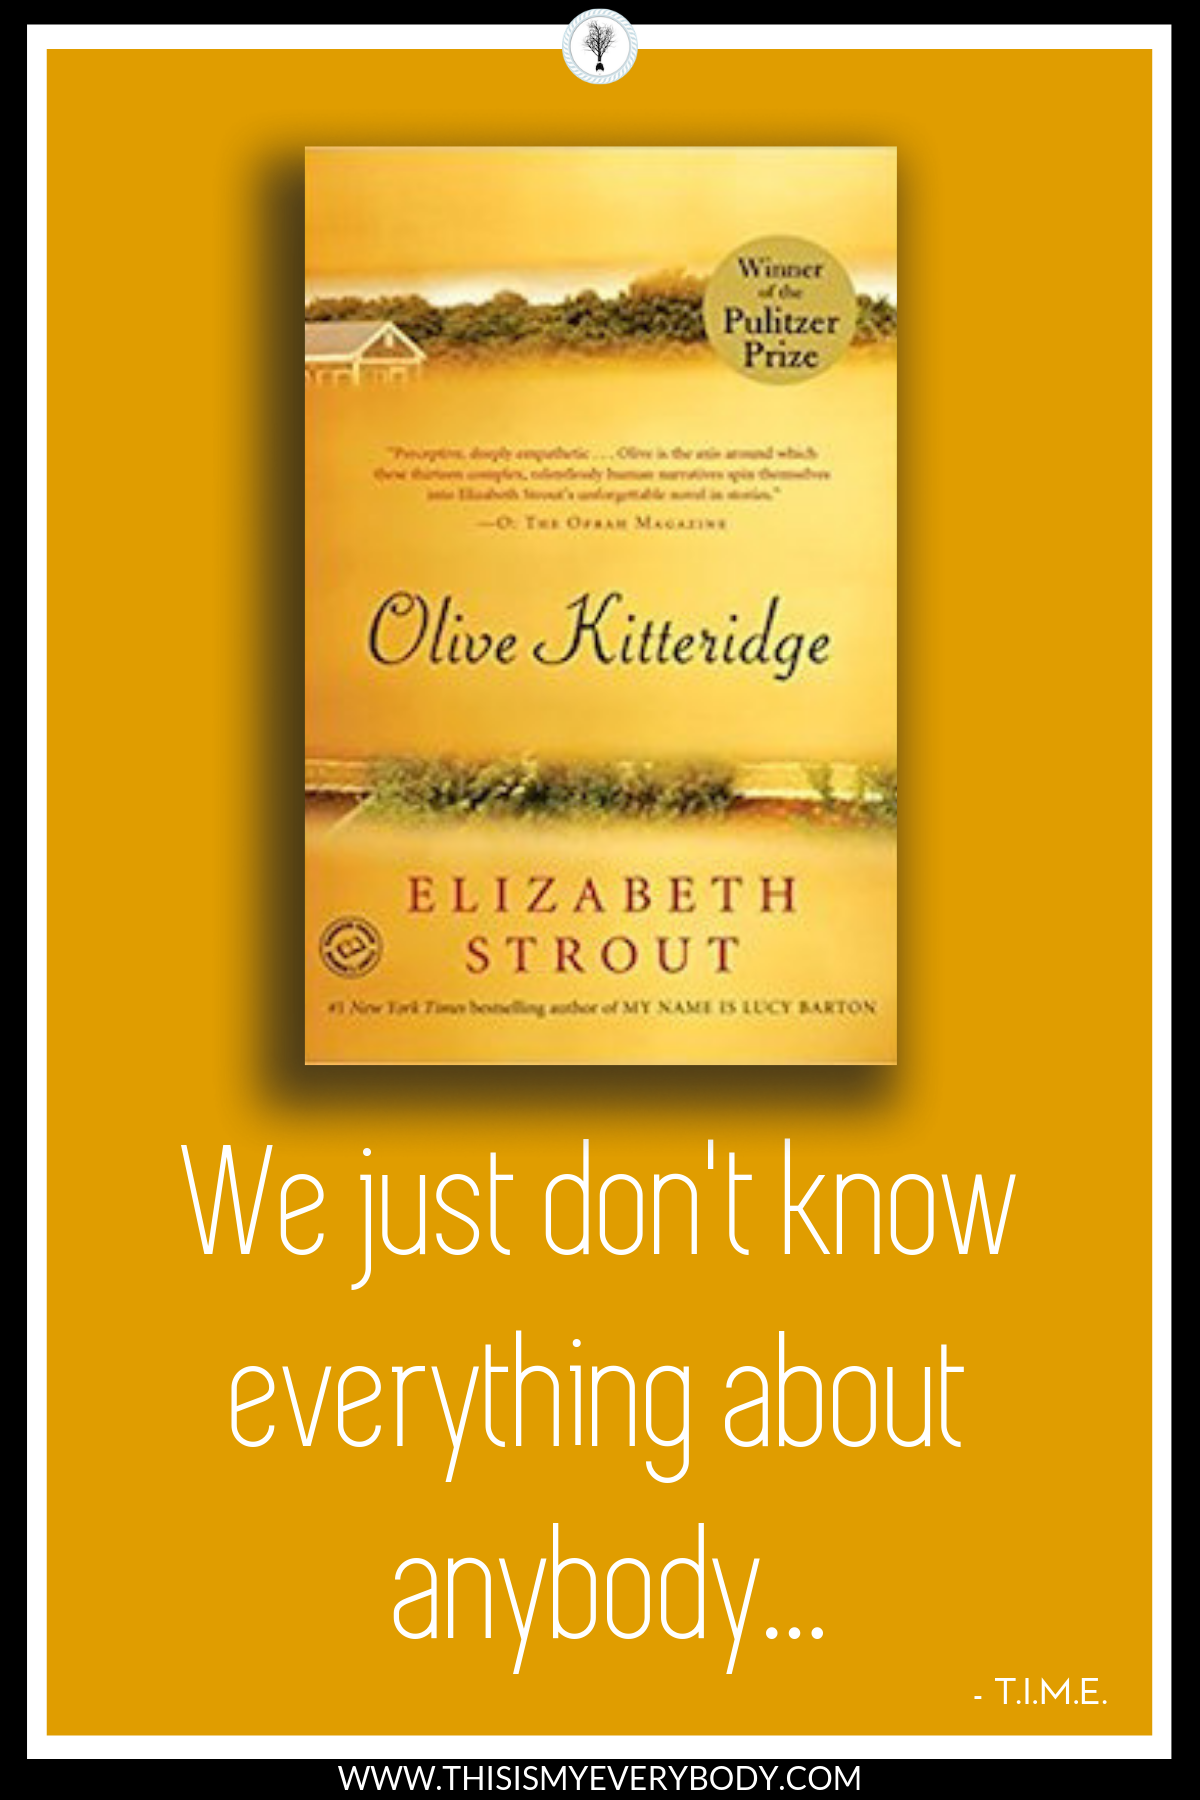 Fear makes us say really bad things sometimes. We just don't know everything about anyone. Read the book. Then, watch Frances McDormand serve it up on screen. Bonus… Bill Murray. The two of them together…Heaven… Olive Kitteridge by Elizabeth Strout